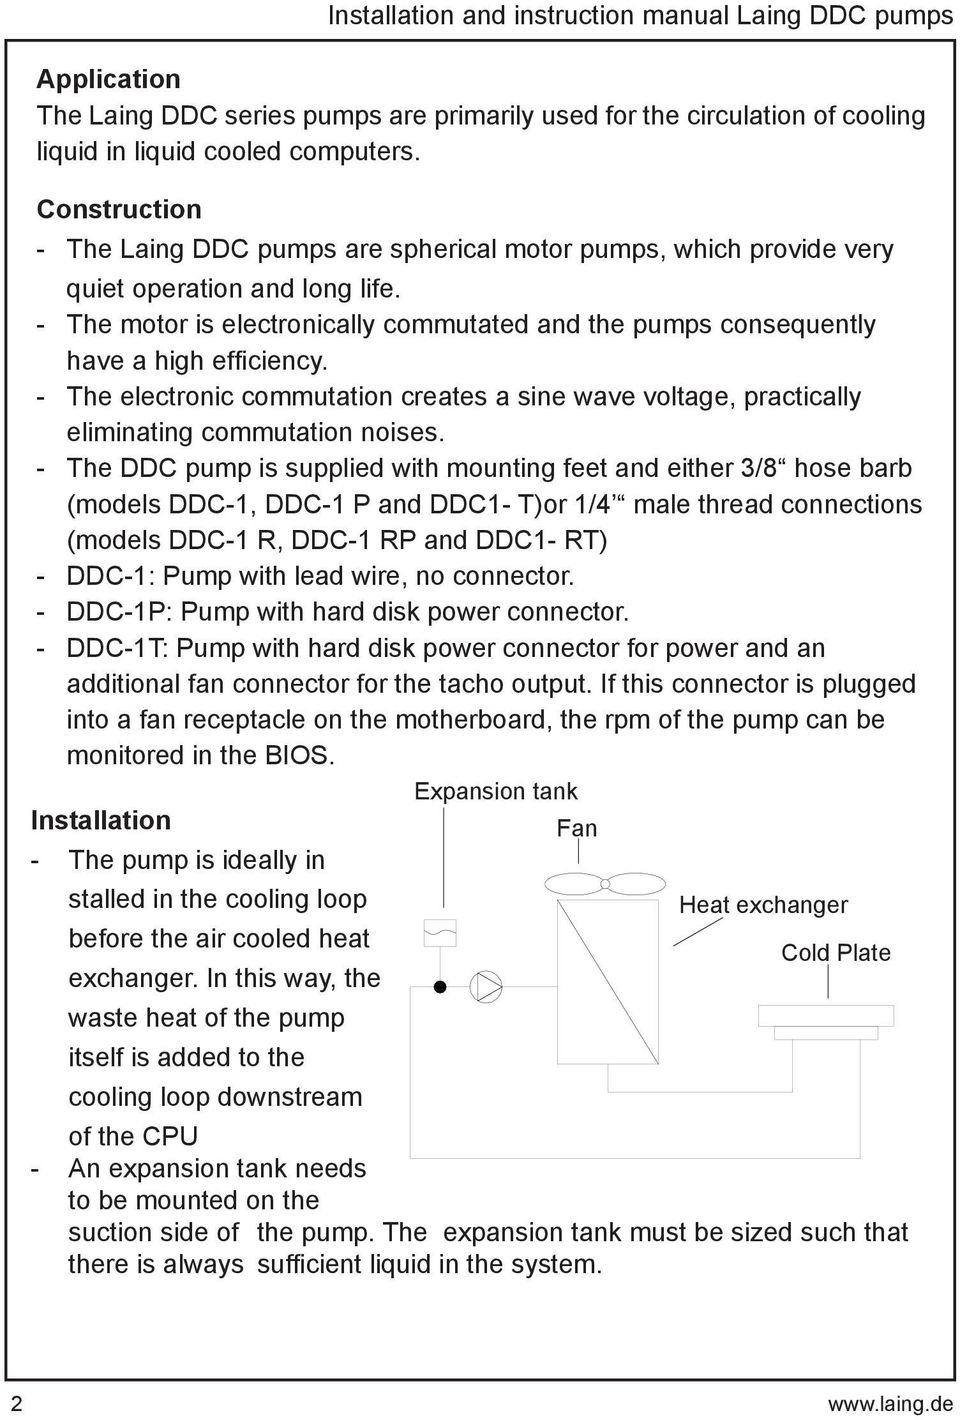 Installation And Instruction Manual For Laing Ddc Pumps Pdf Pump Wiring The Motor Is Electronically Commutated Consequently Have A High Efficiency